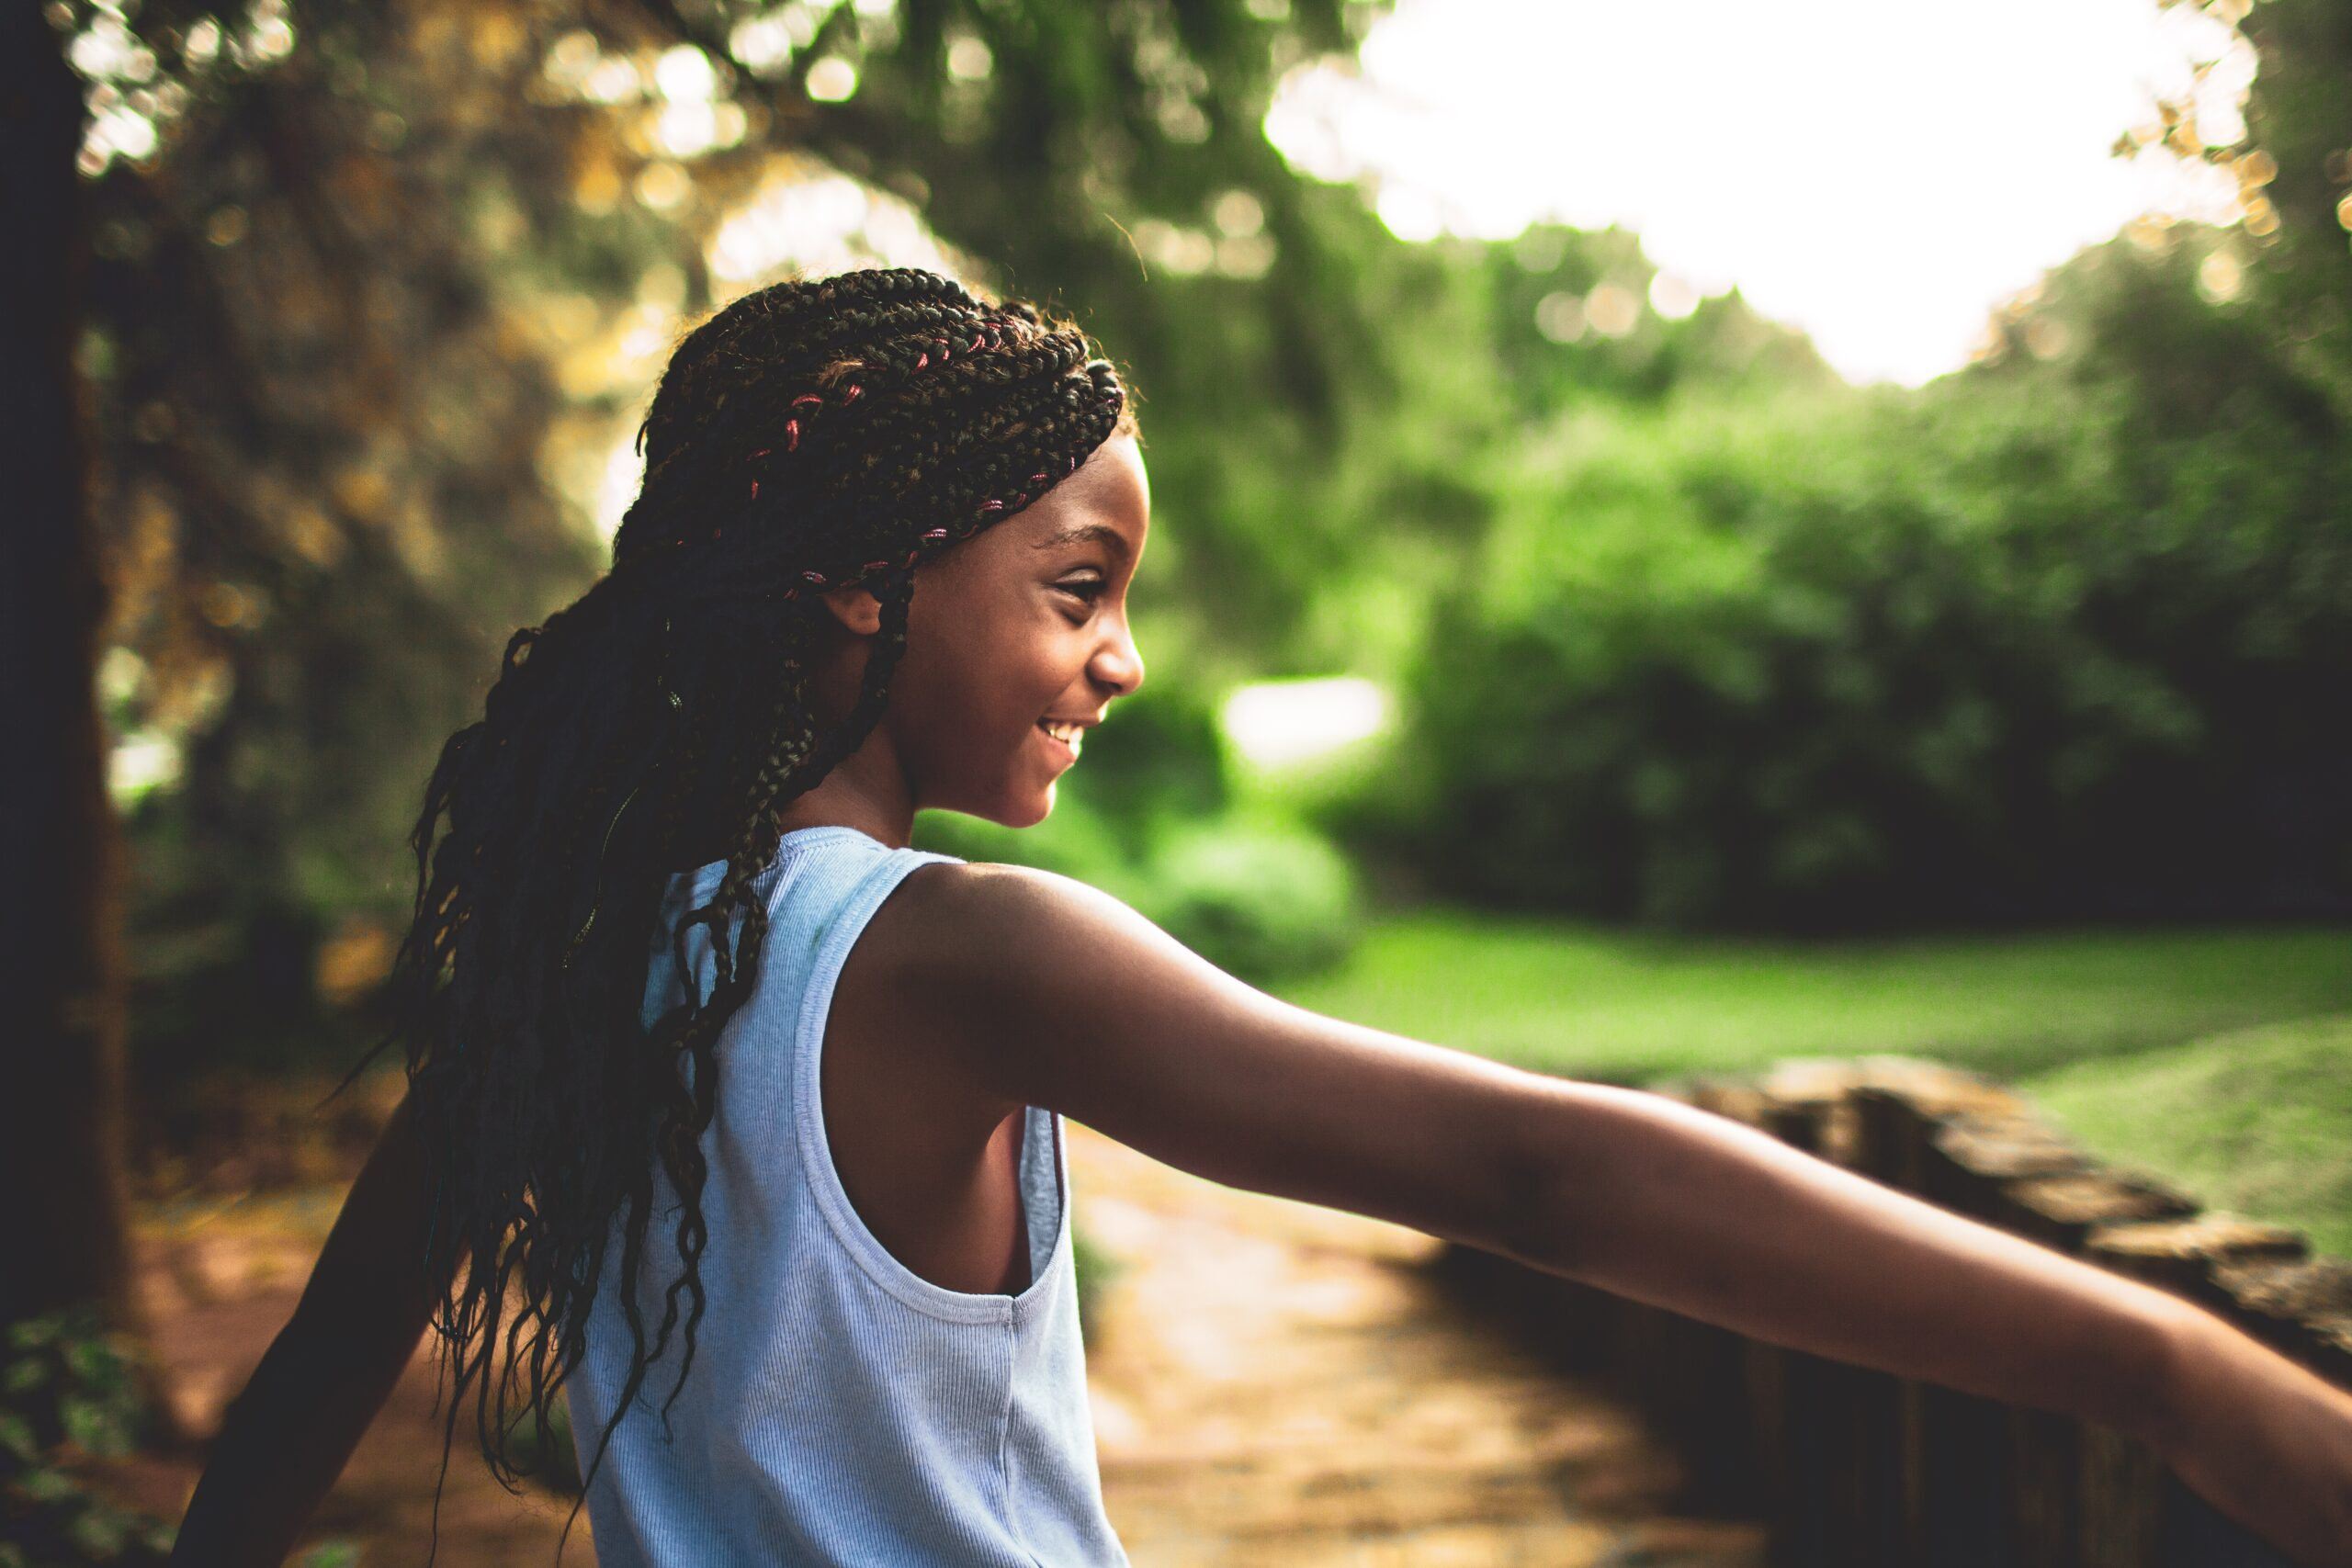 young black person smiling and enjoying nature